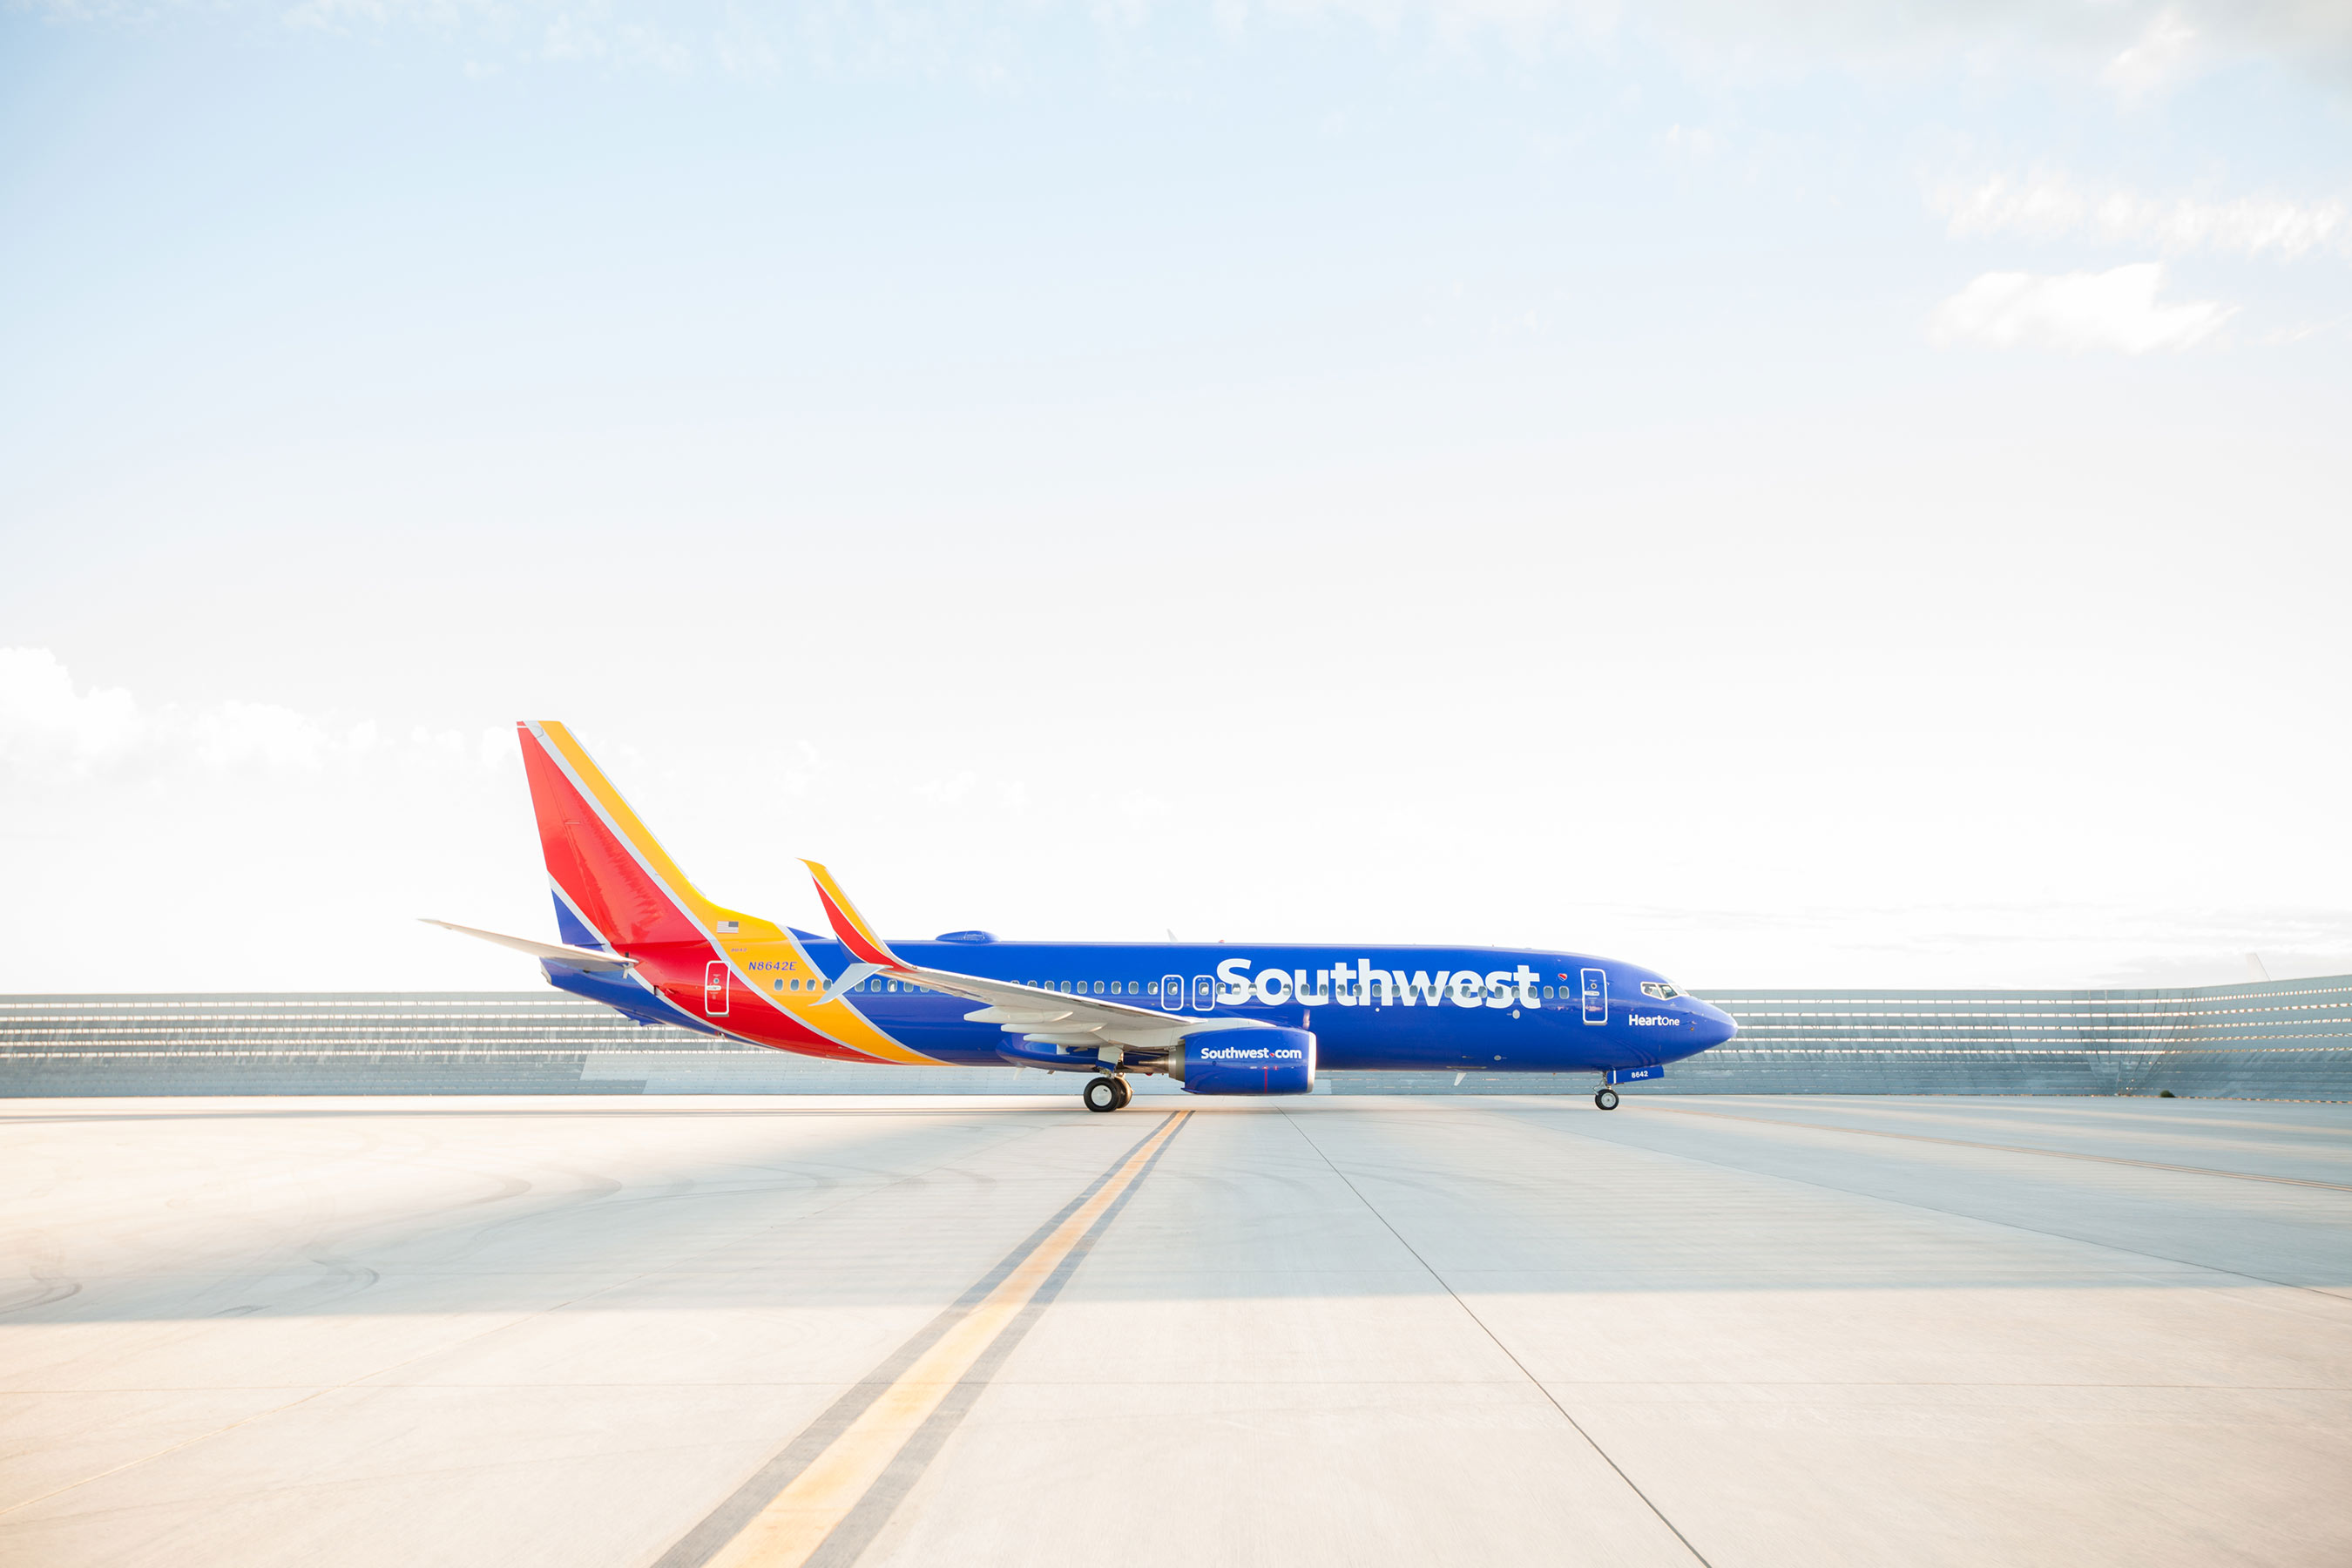 Southwest Airlines is taking its cargo business international